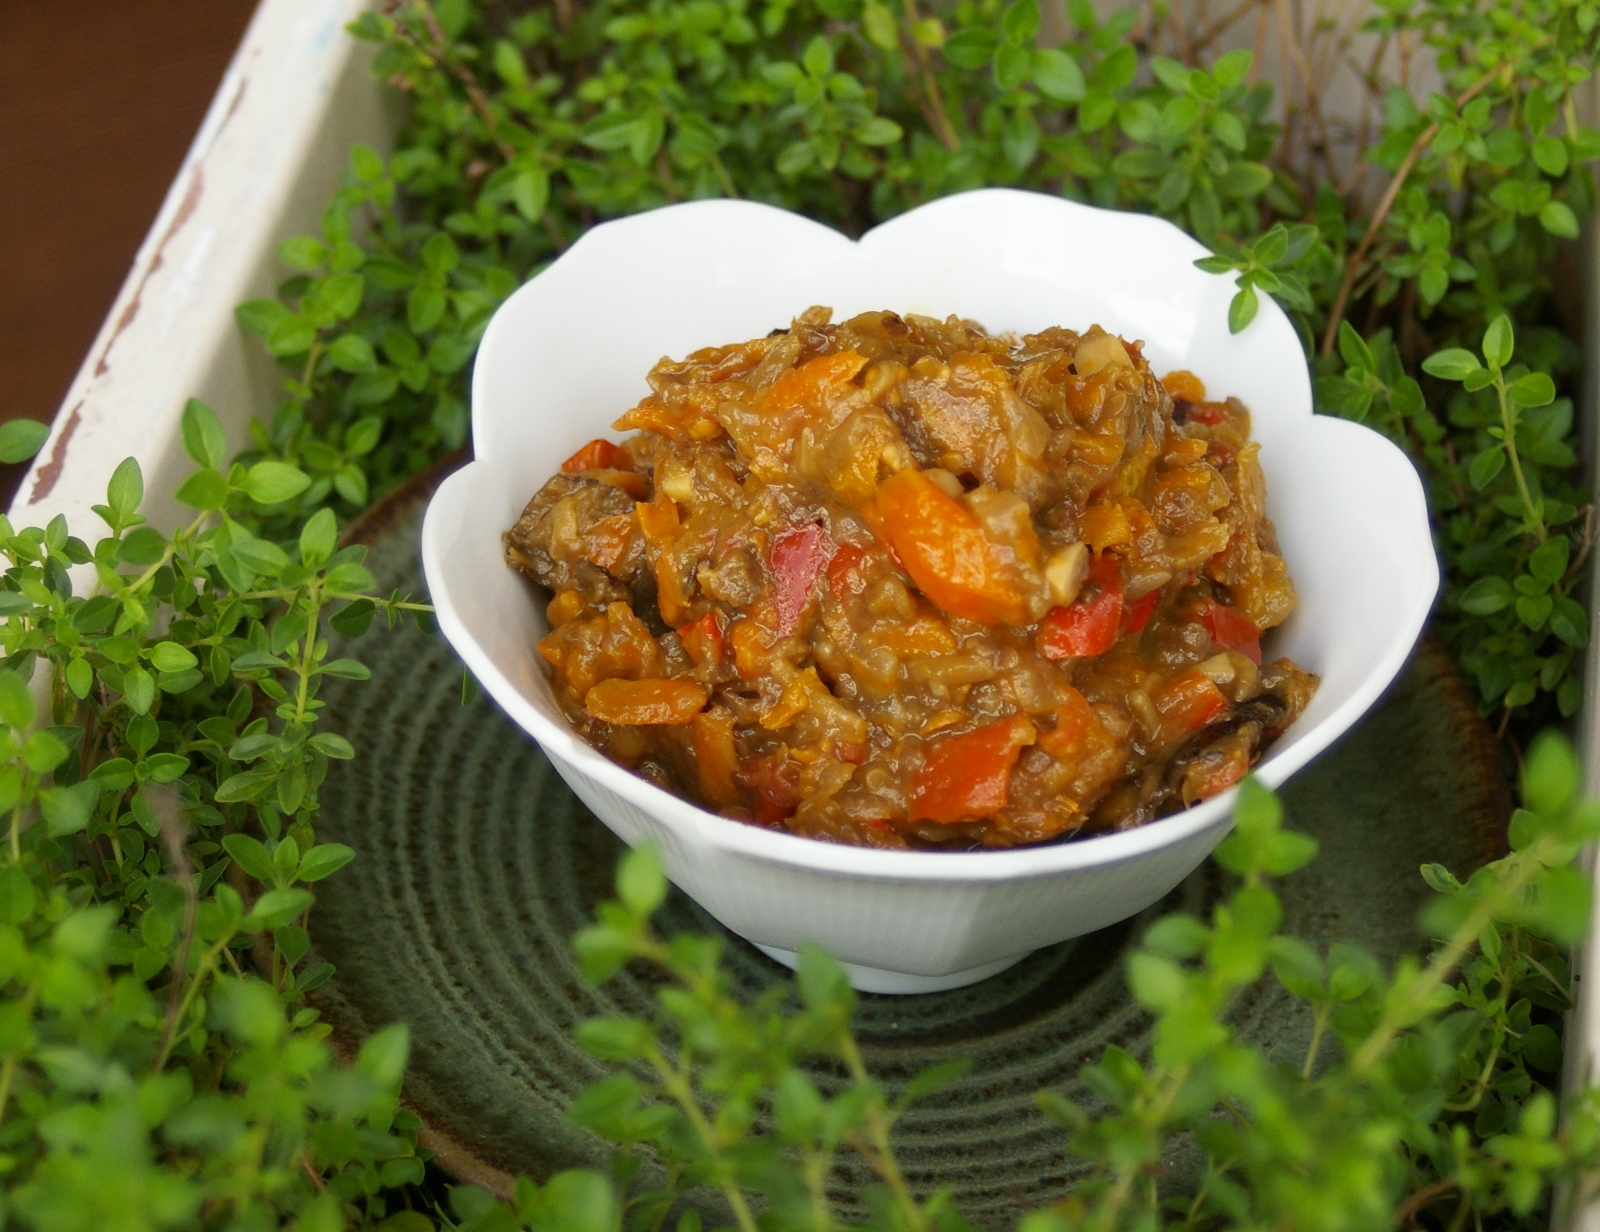 I need a recipe for eggplant caviar. To there all the pieces were))) 6